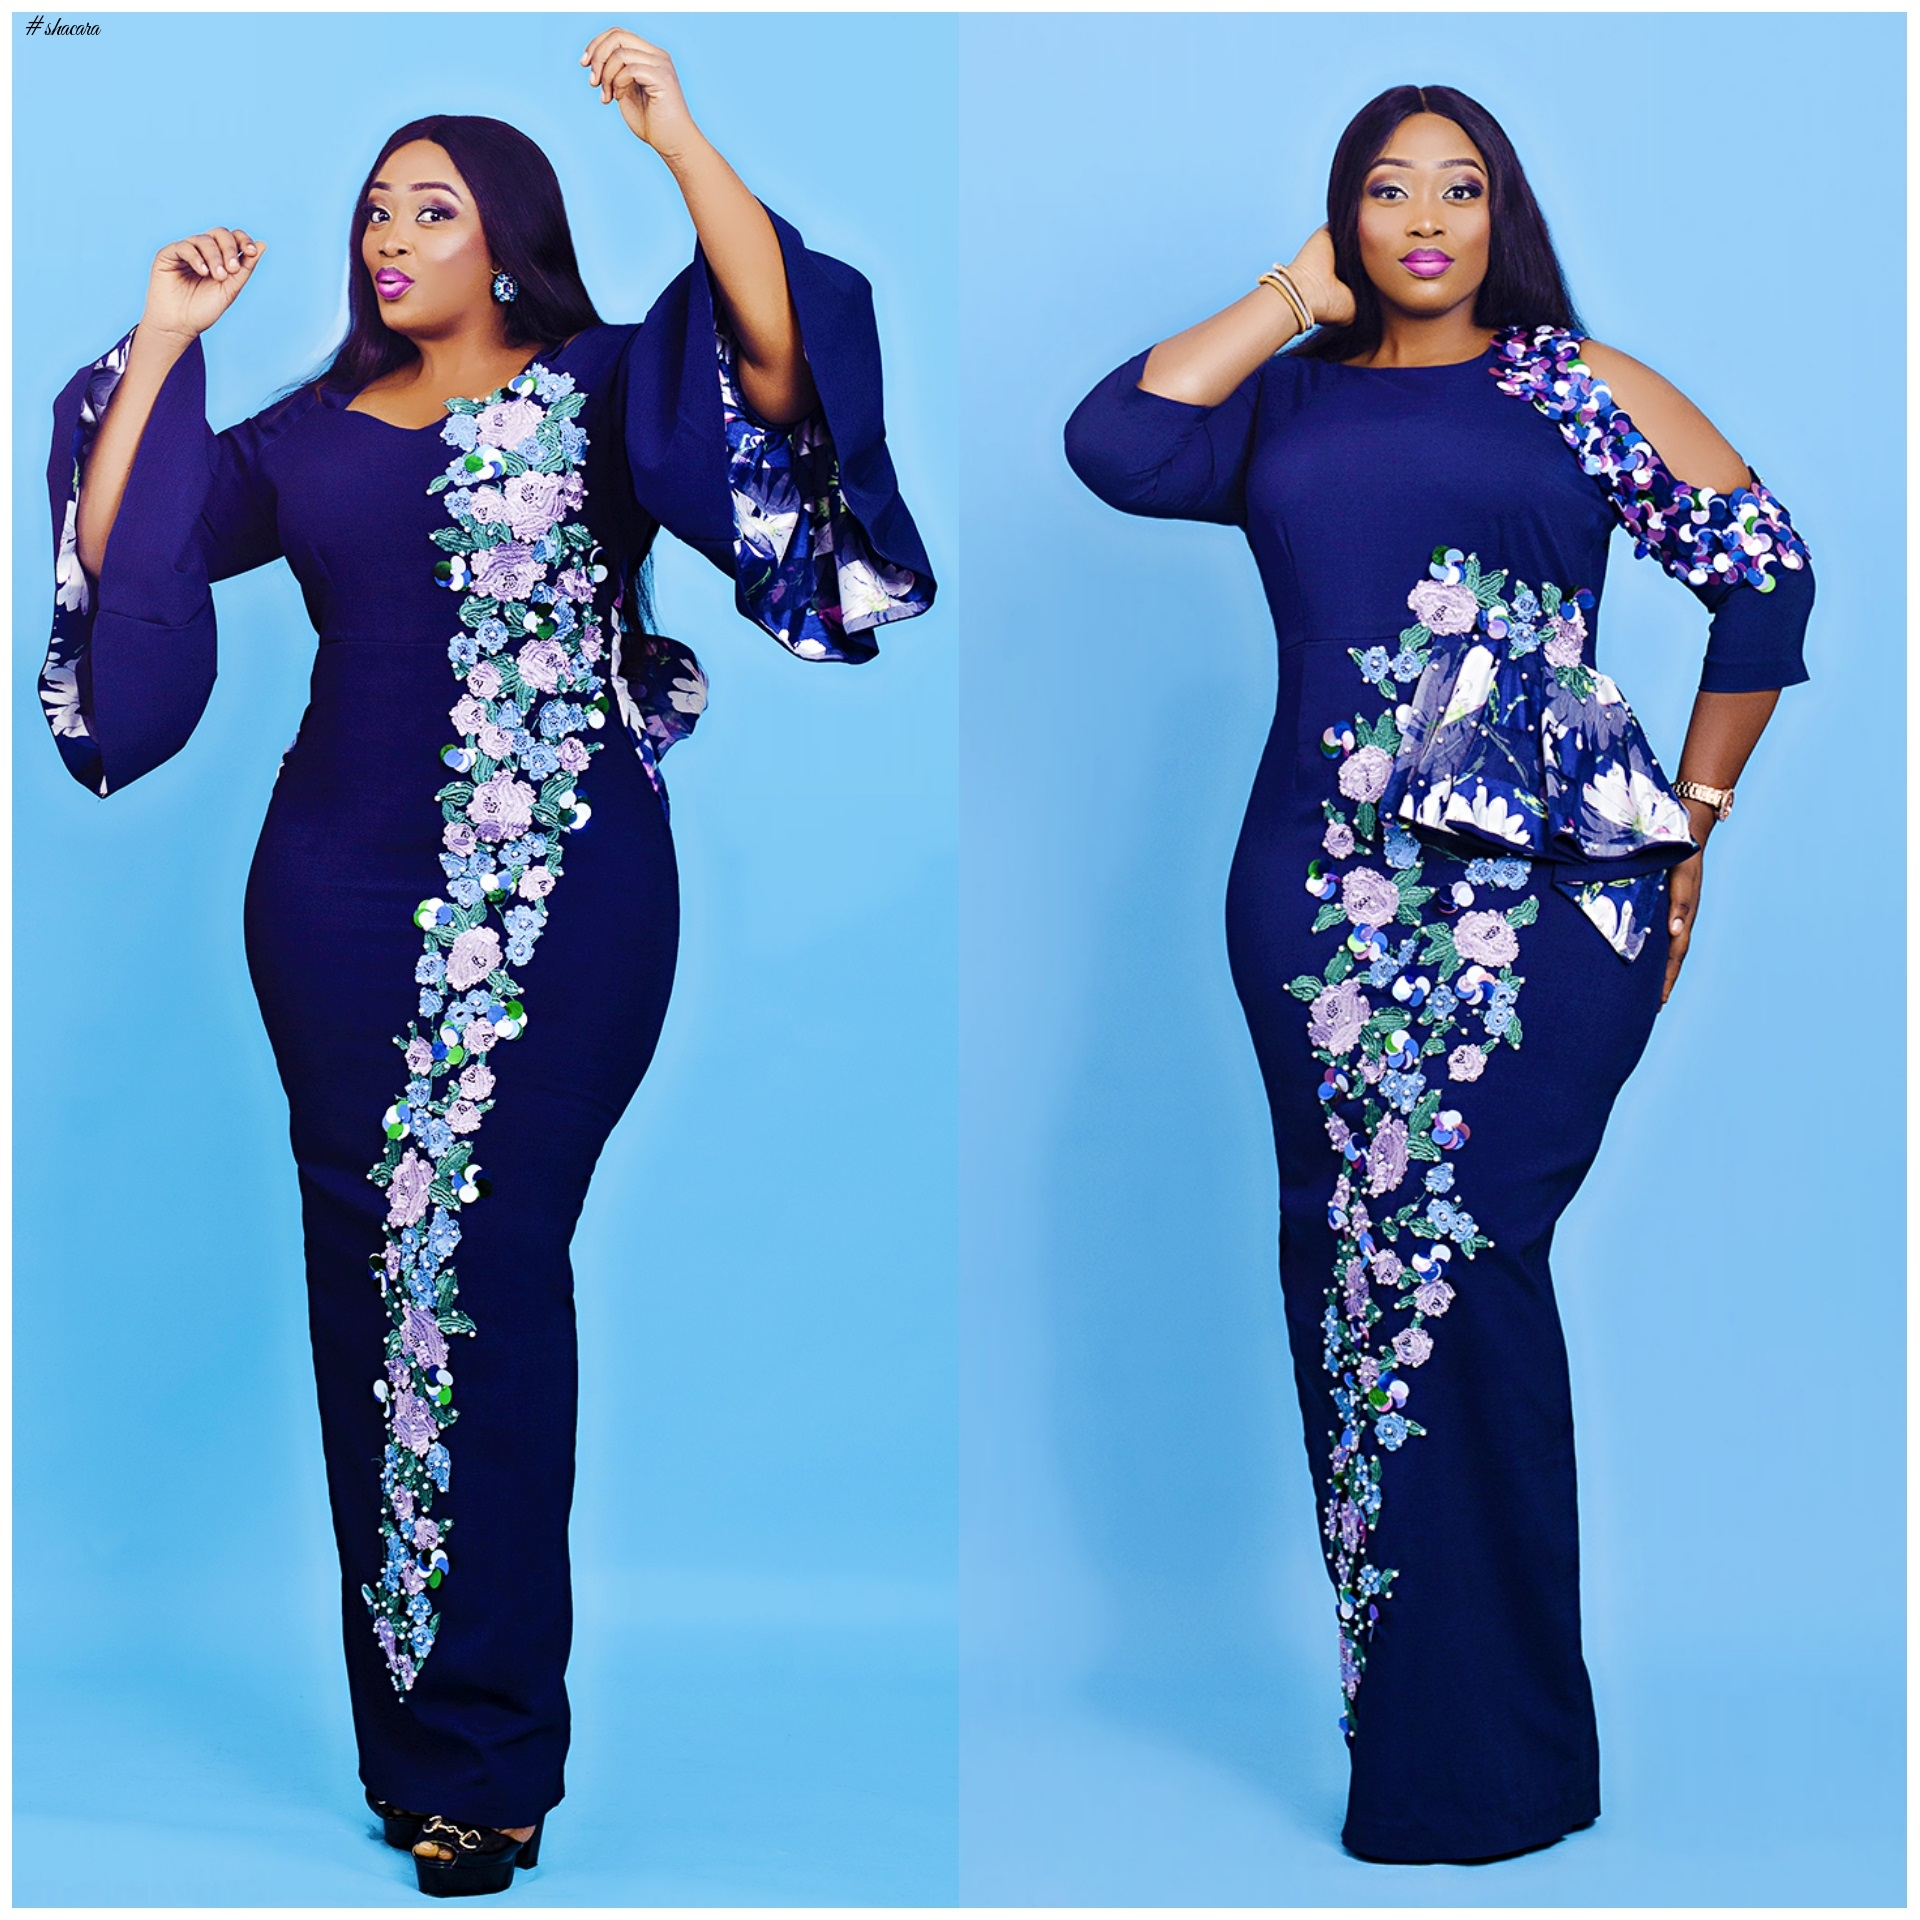 Plus Size Brand Makioba Releases Its SS17 Mid-Season Collection 'Efflorescence'